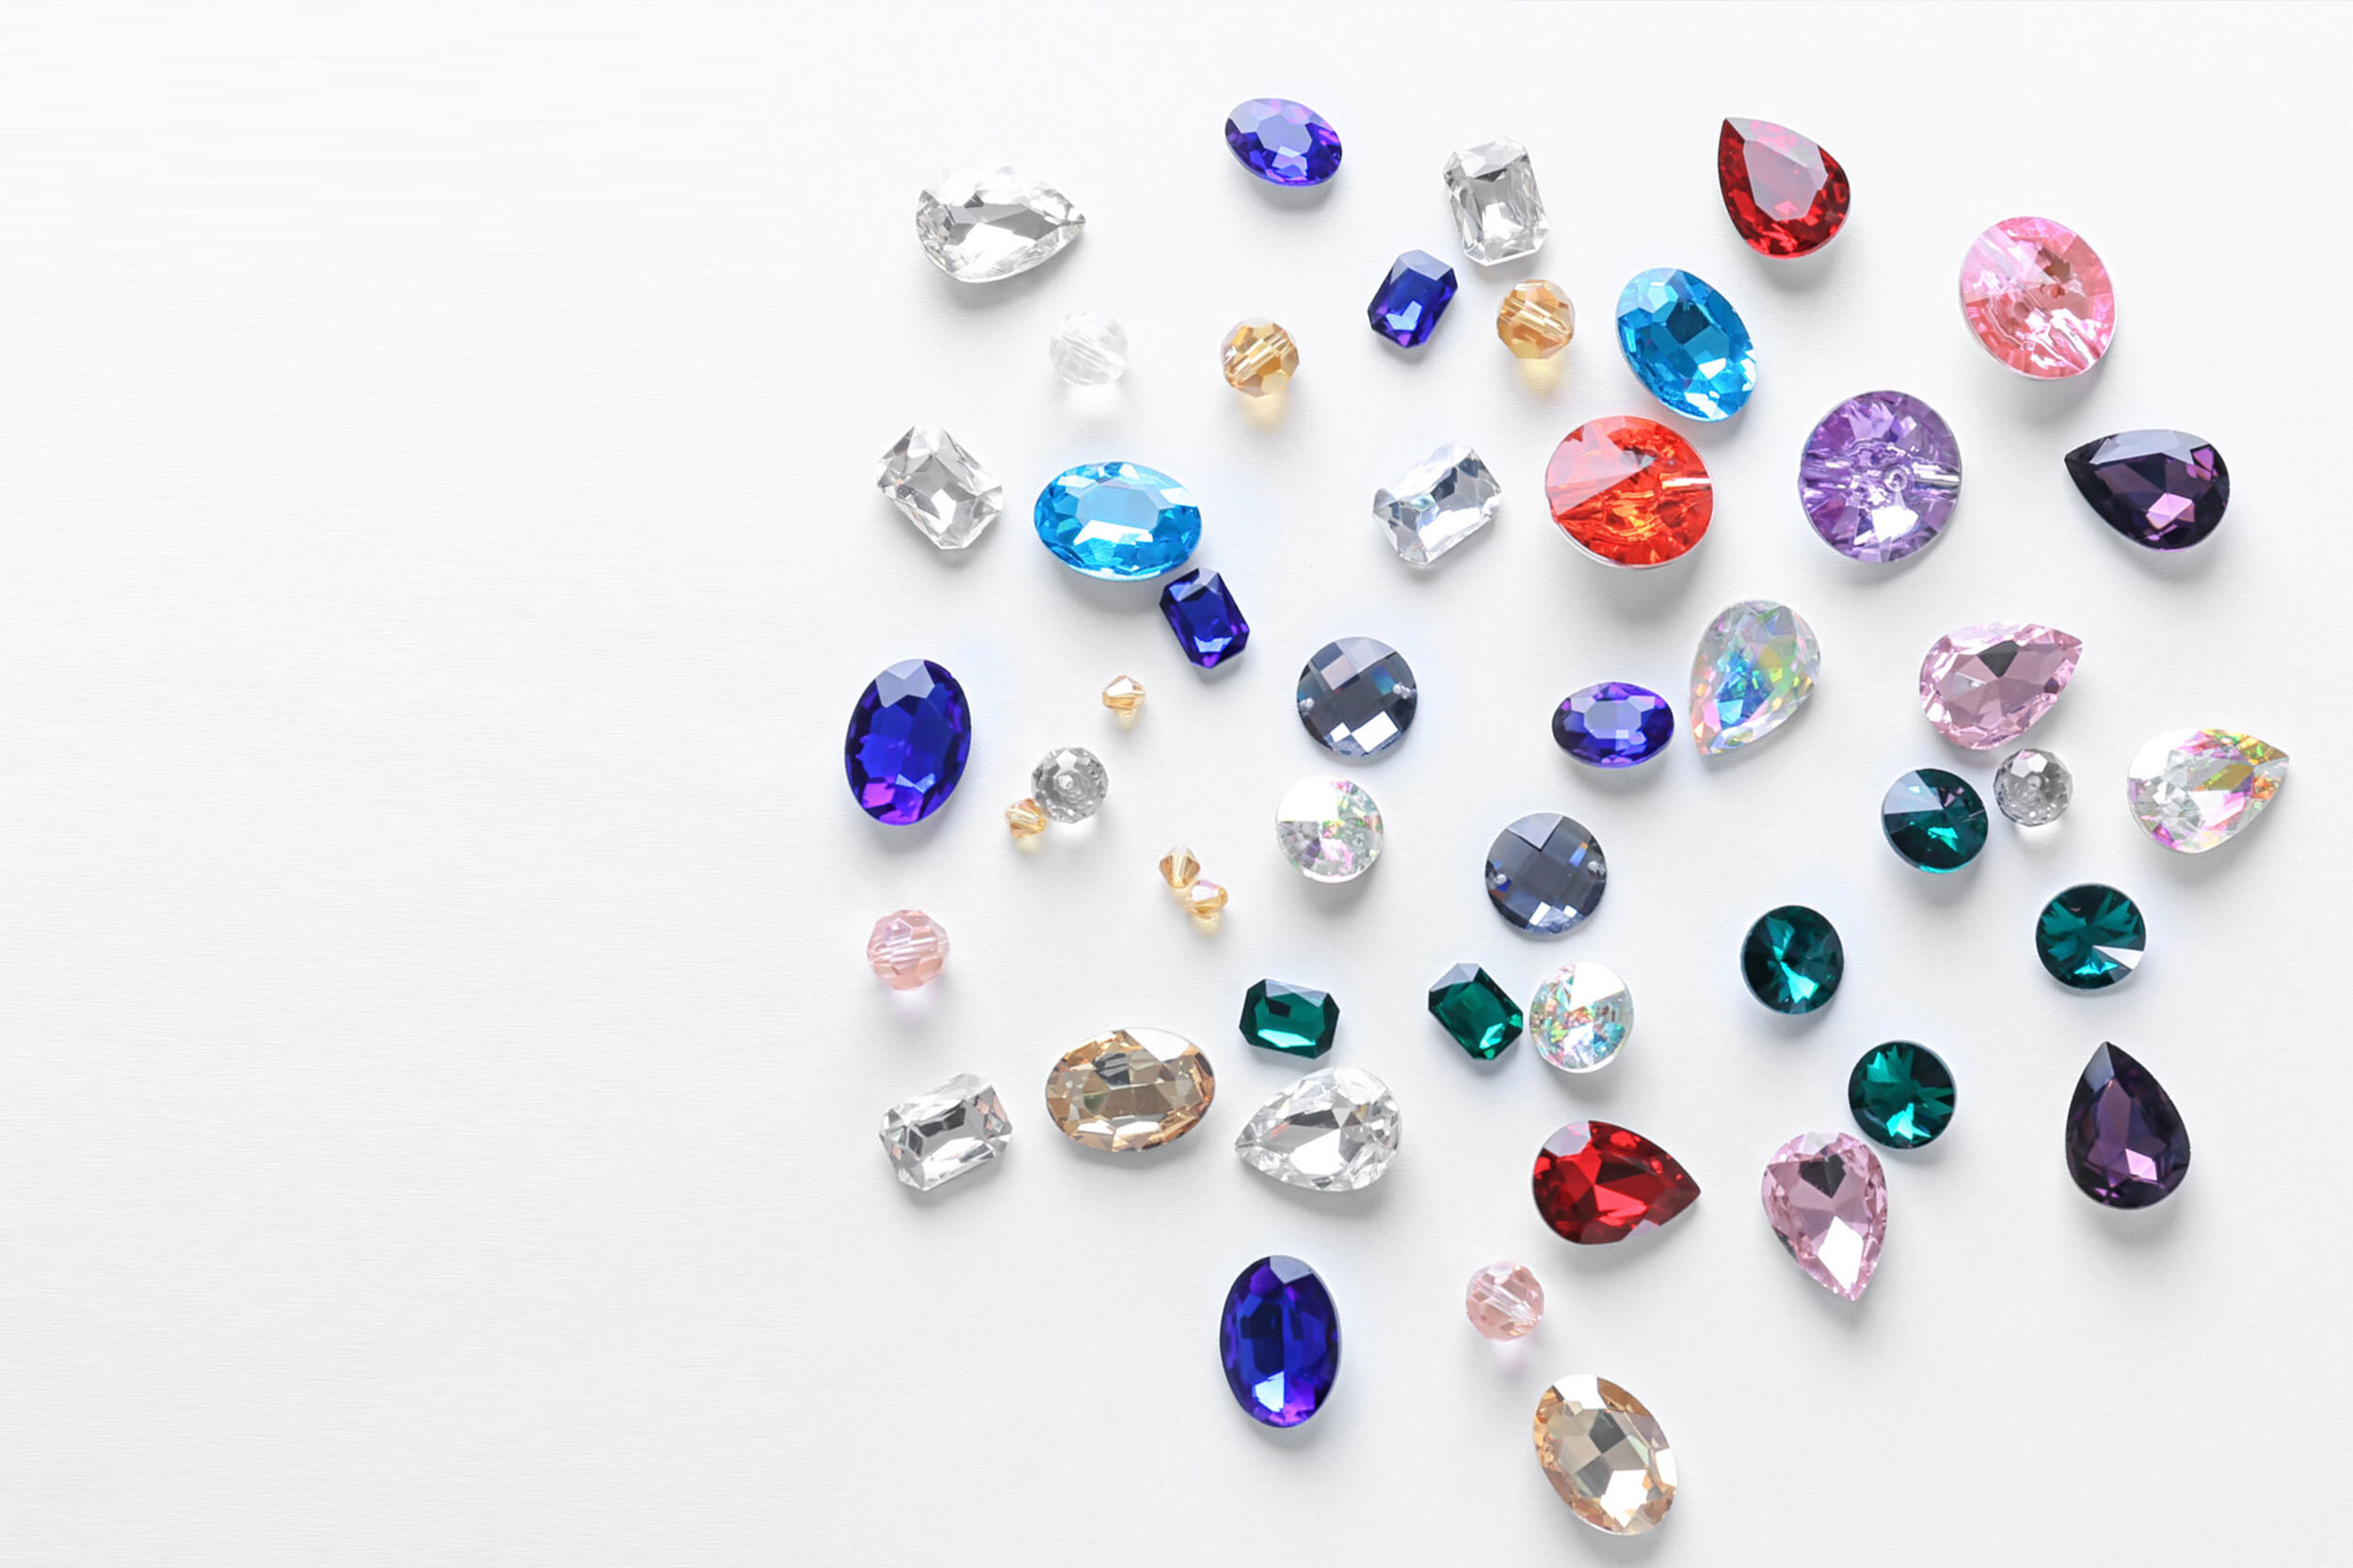 Gem Stone Events - Learn more about your birth gemstone at these exclusive viewing events.